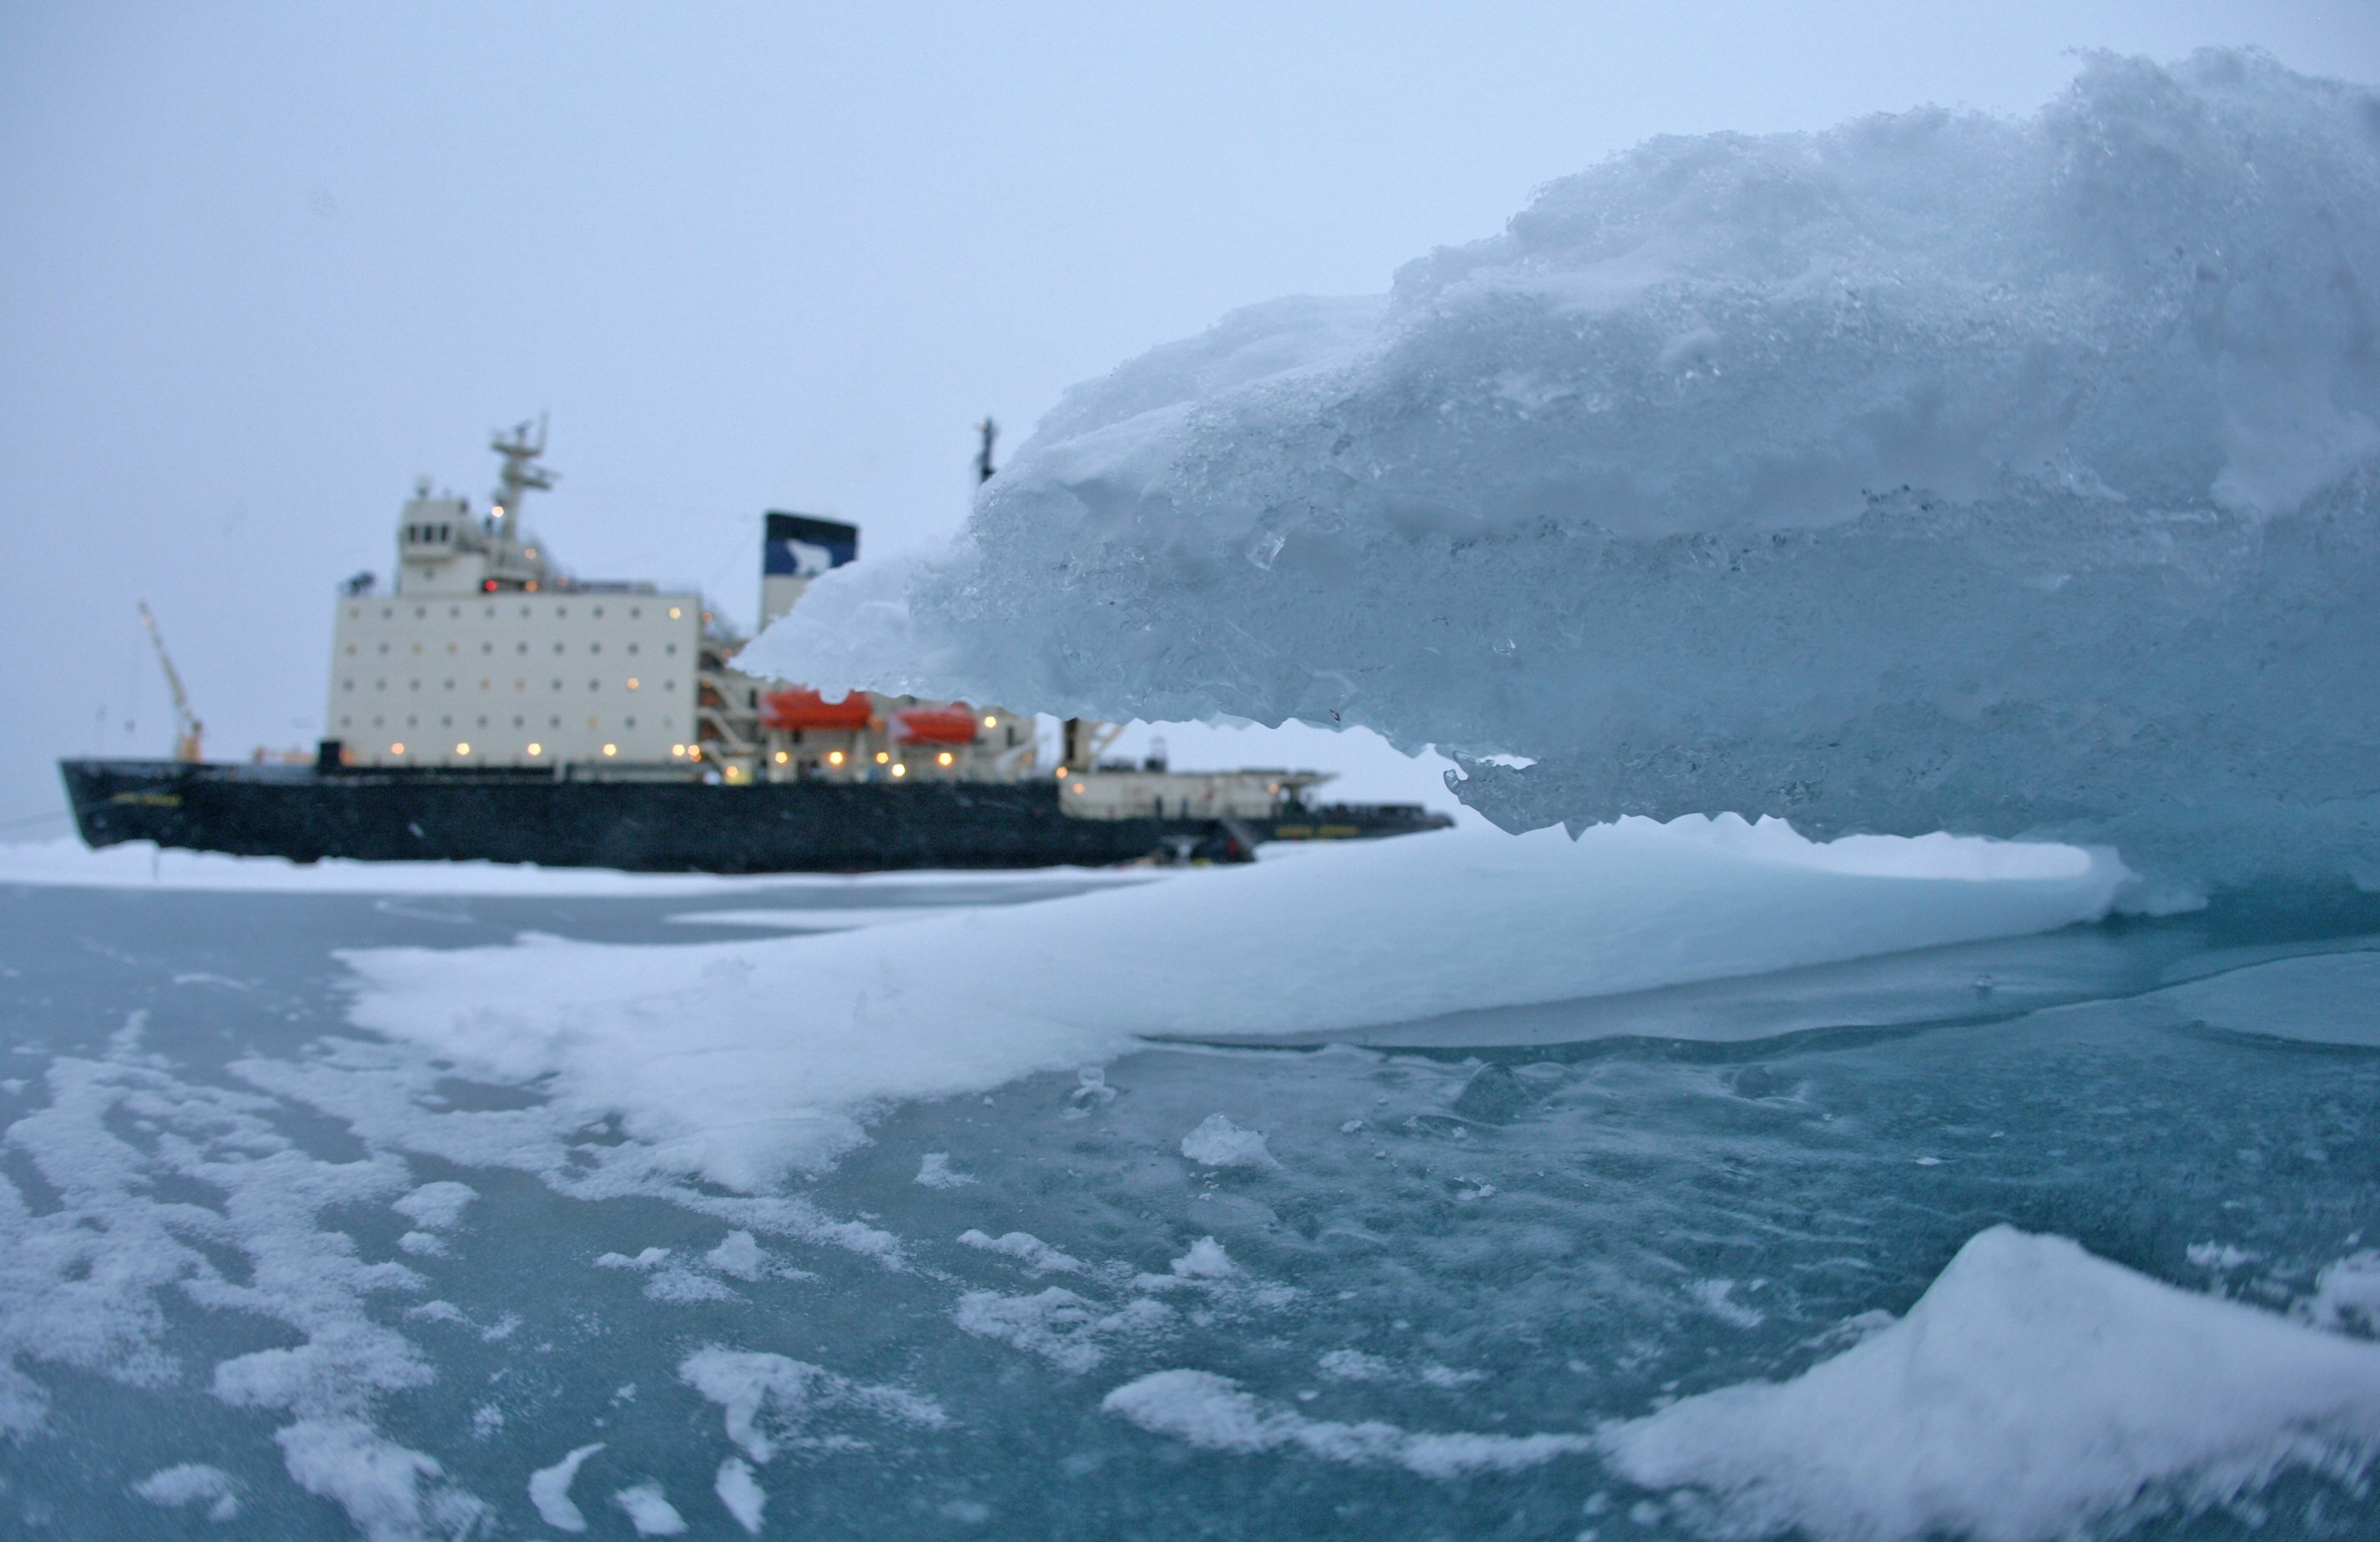 A new Russian state commission undertakes Putin's big Arctic plans